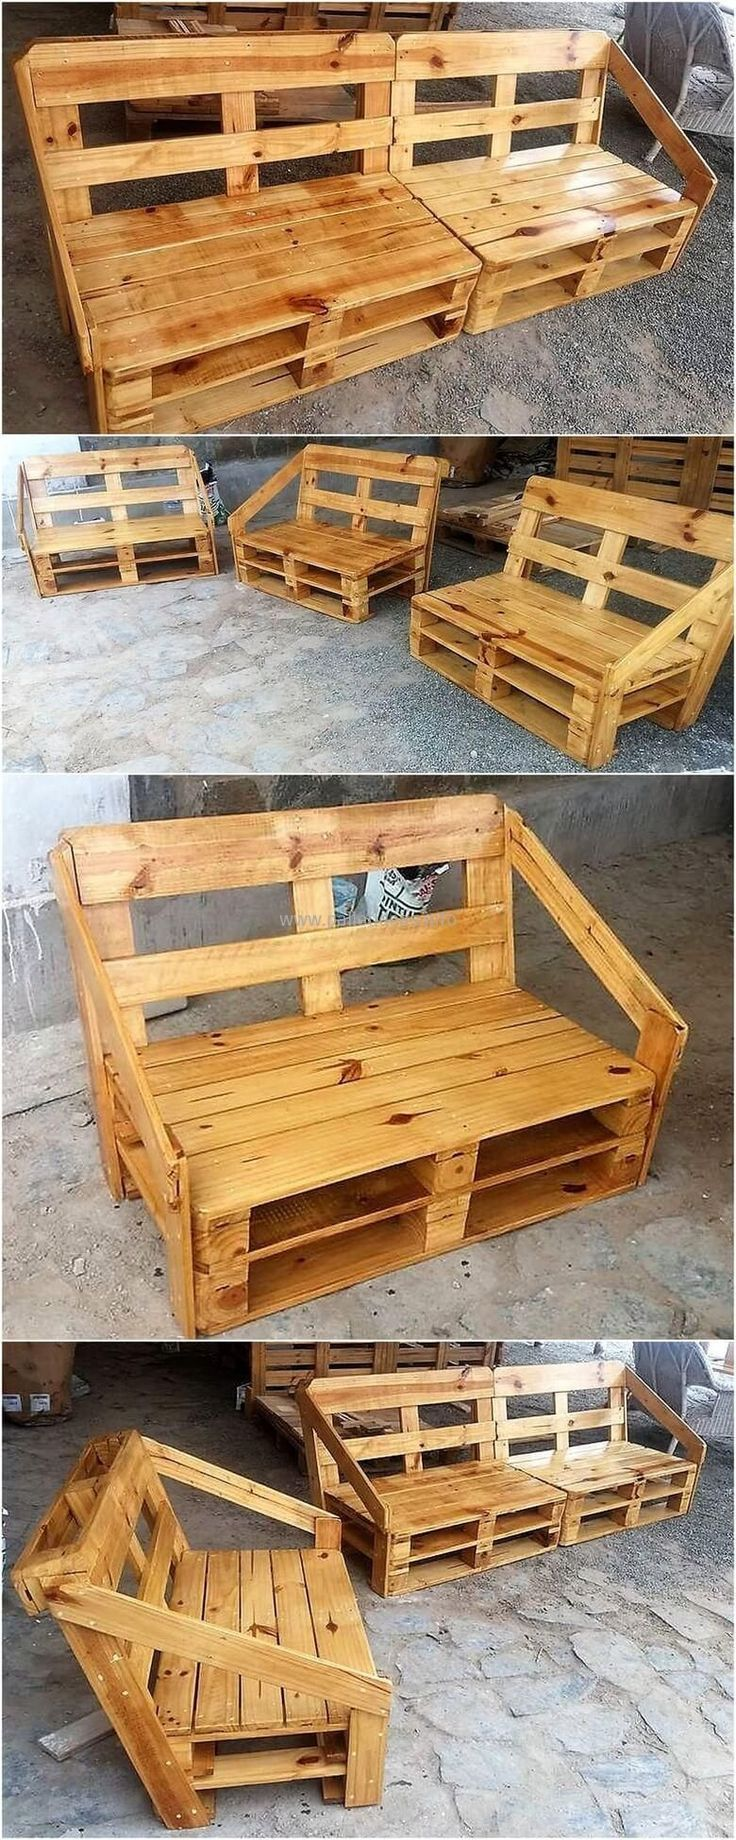 Recycled Pallet Furniture Kayu Pinterest Palettenmobel Mein